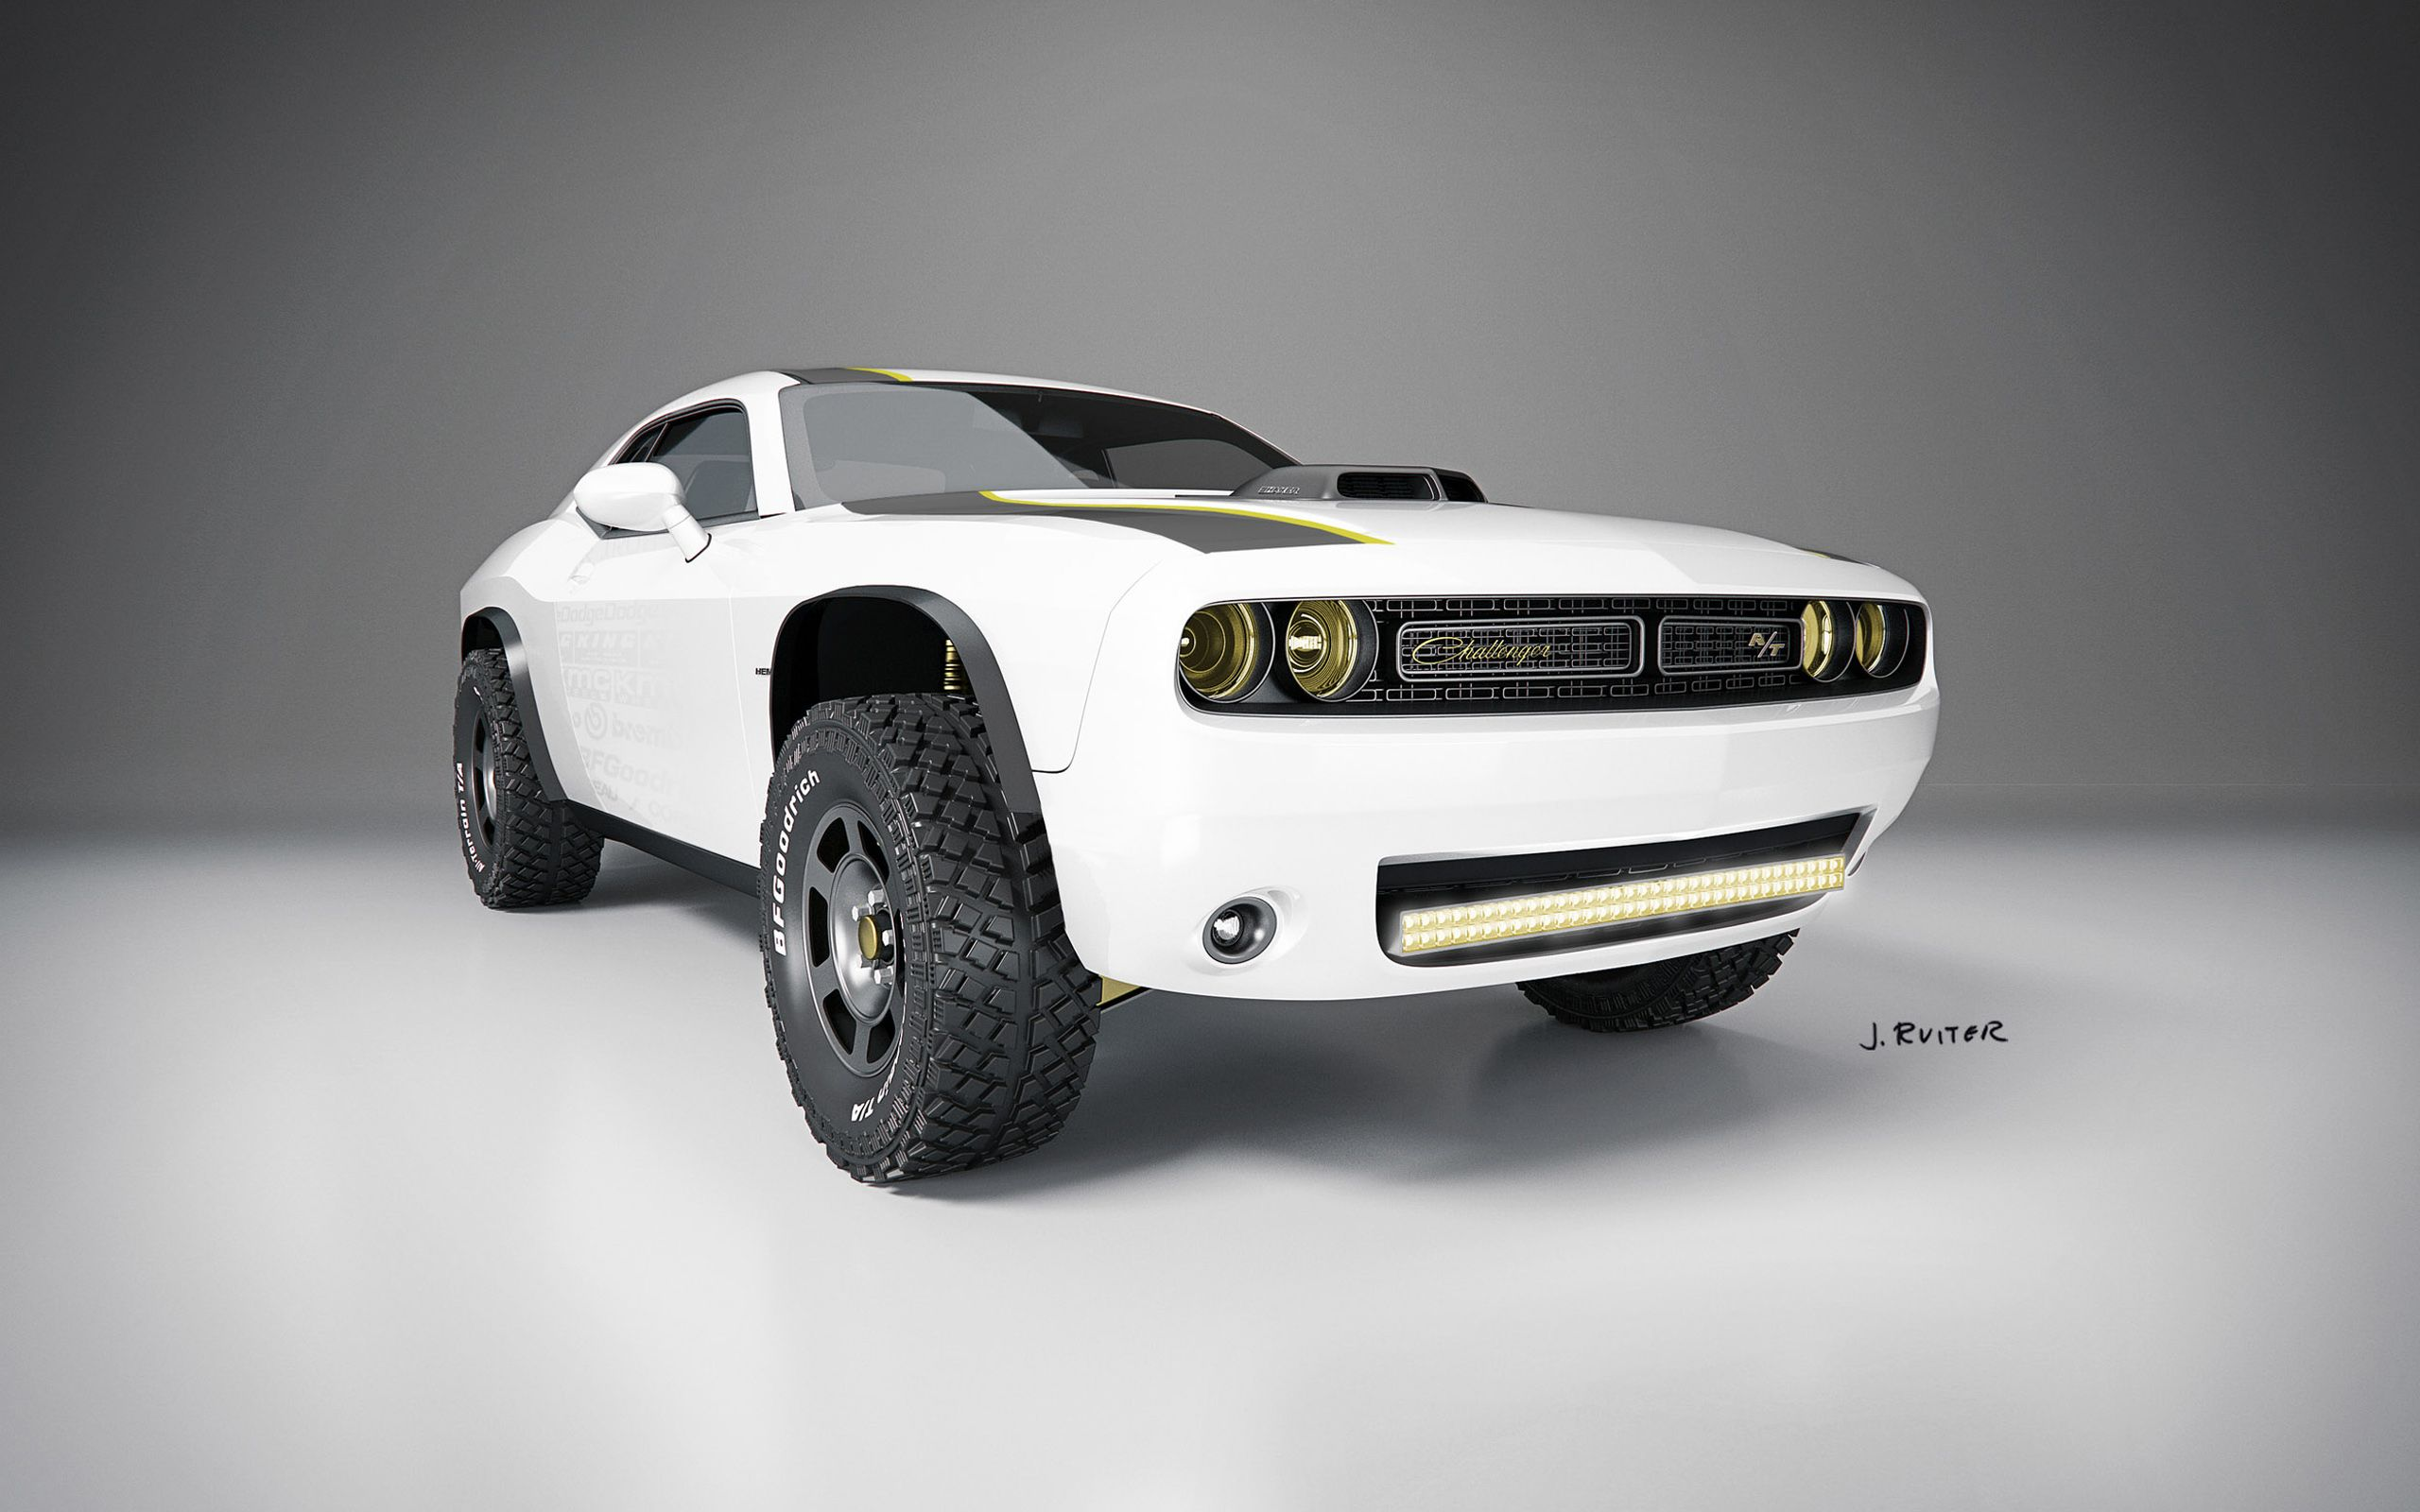 2014 dodge challenger at untamed concept wallpaper hd http imashon com